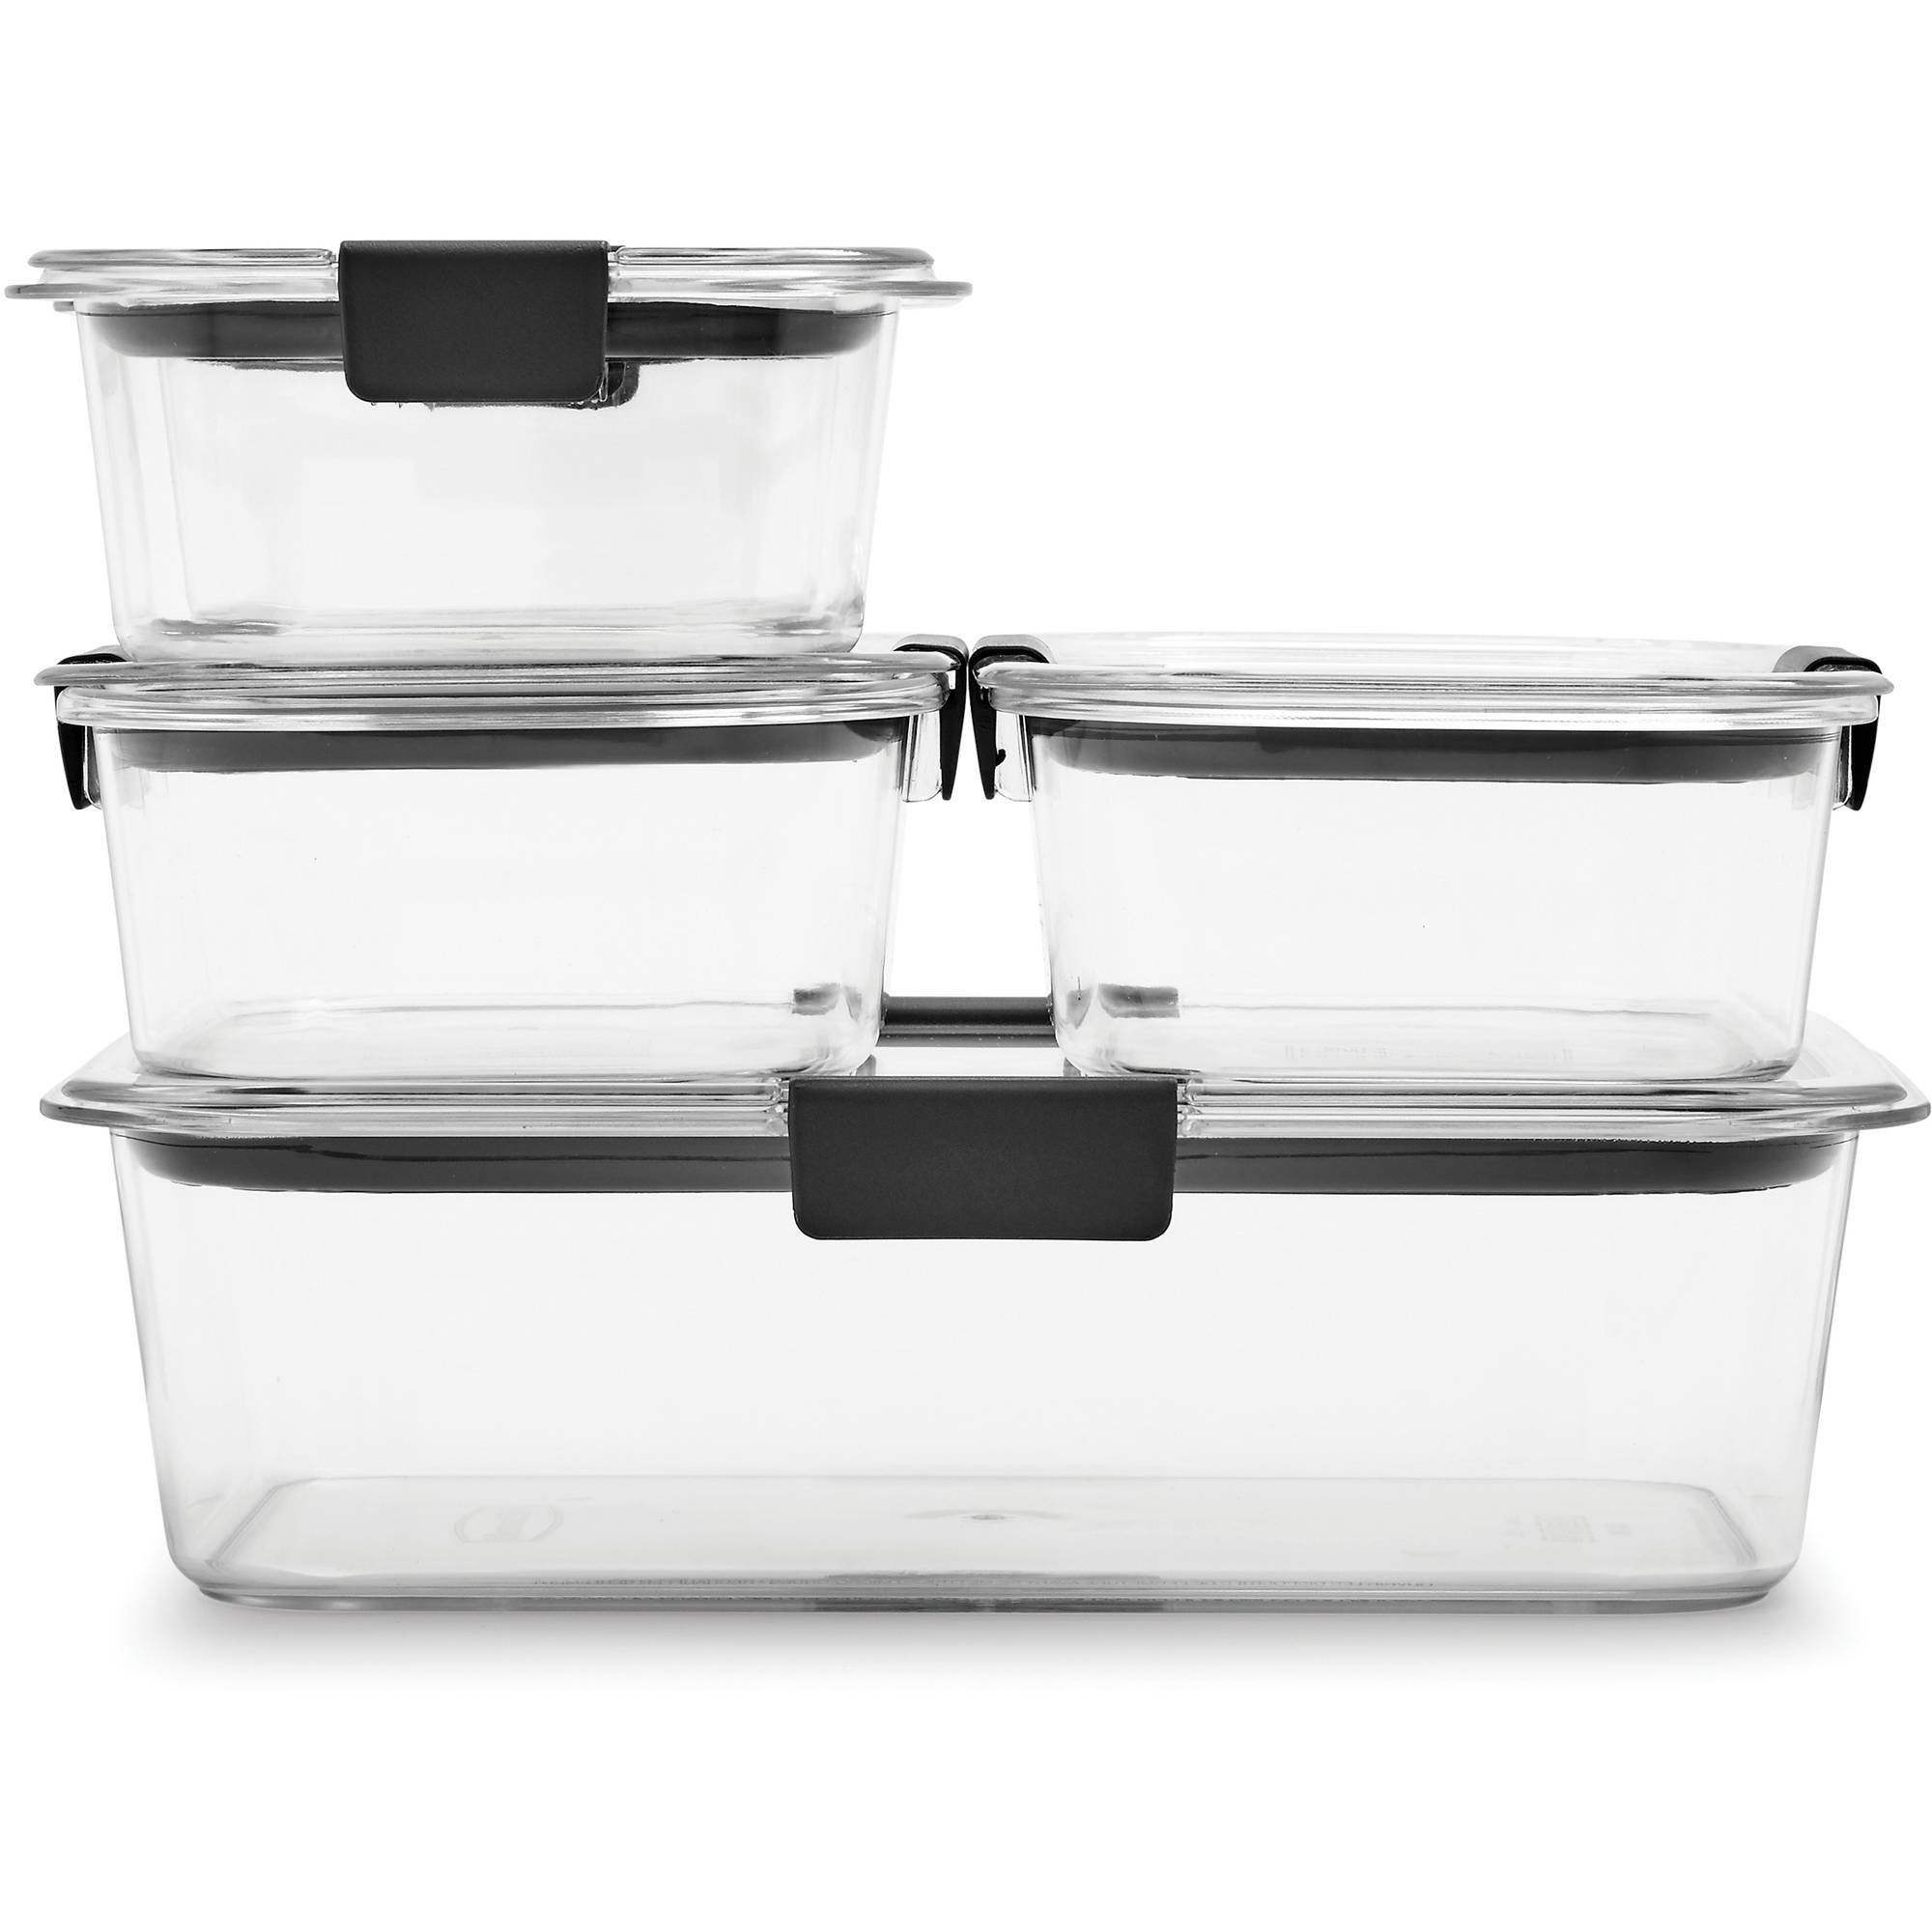 Rubbermaid Brilliance Food Storage Container, 10-Piece Set, Clear